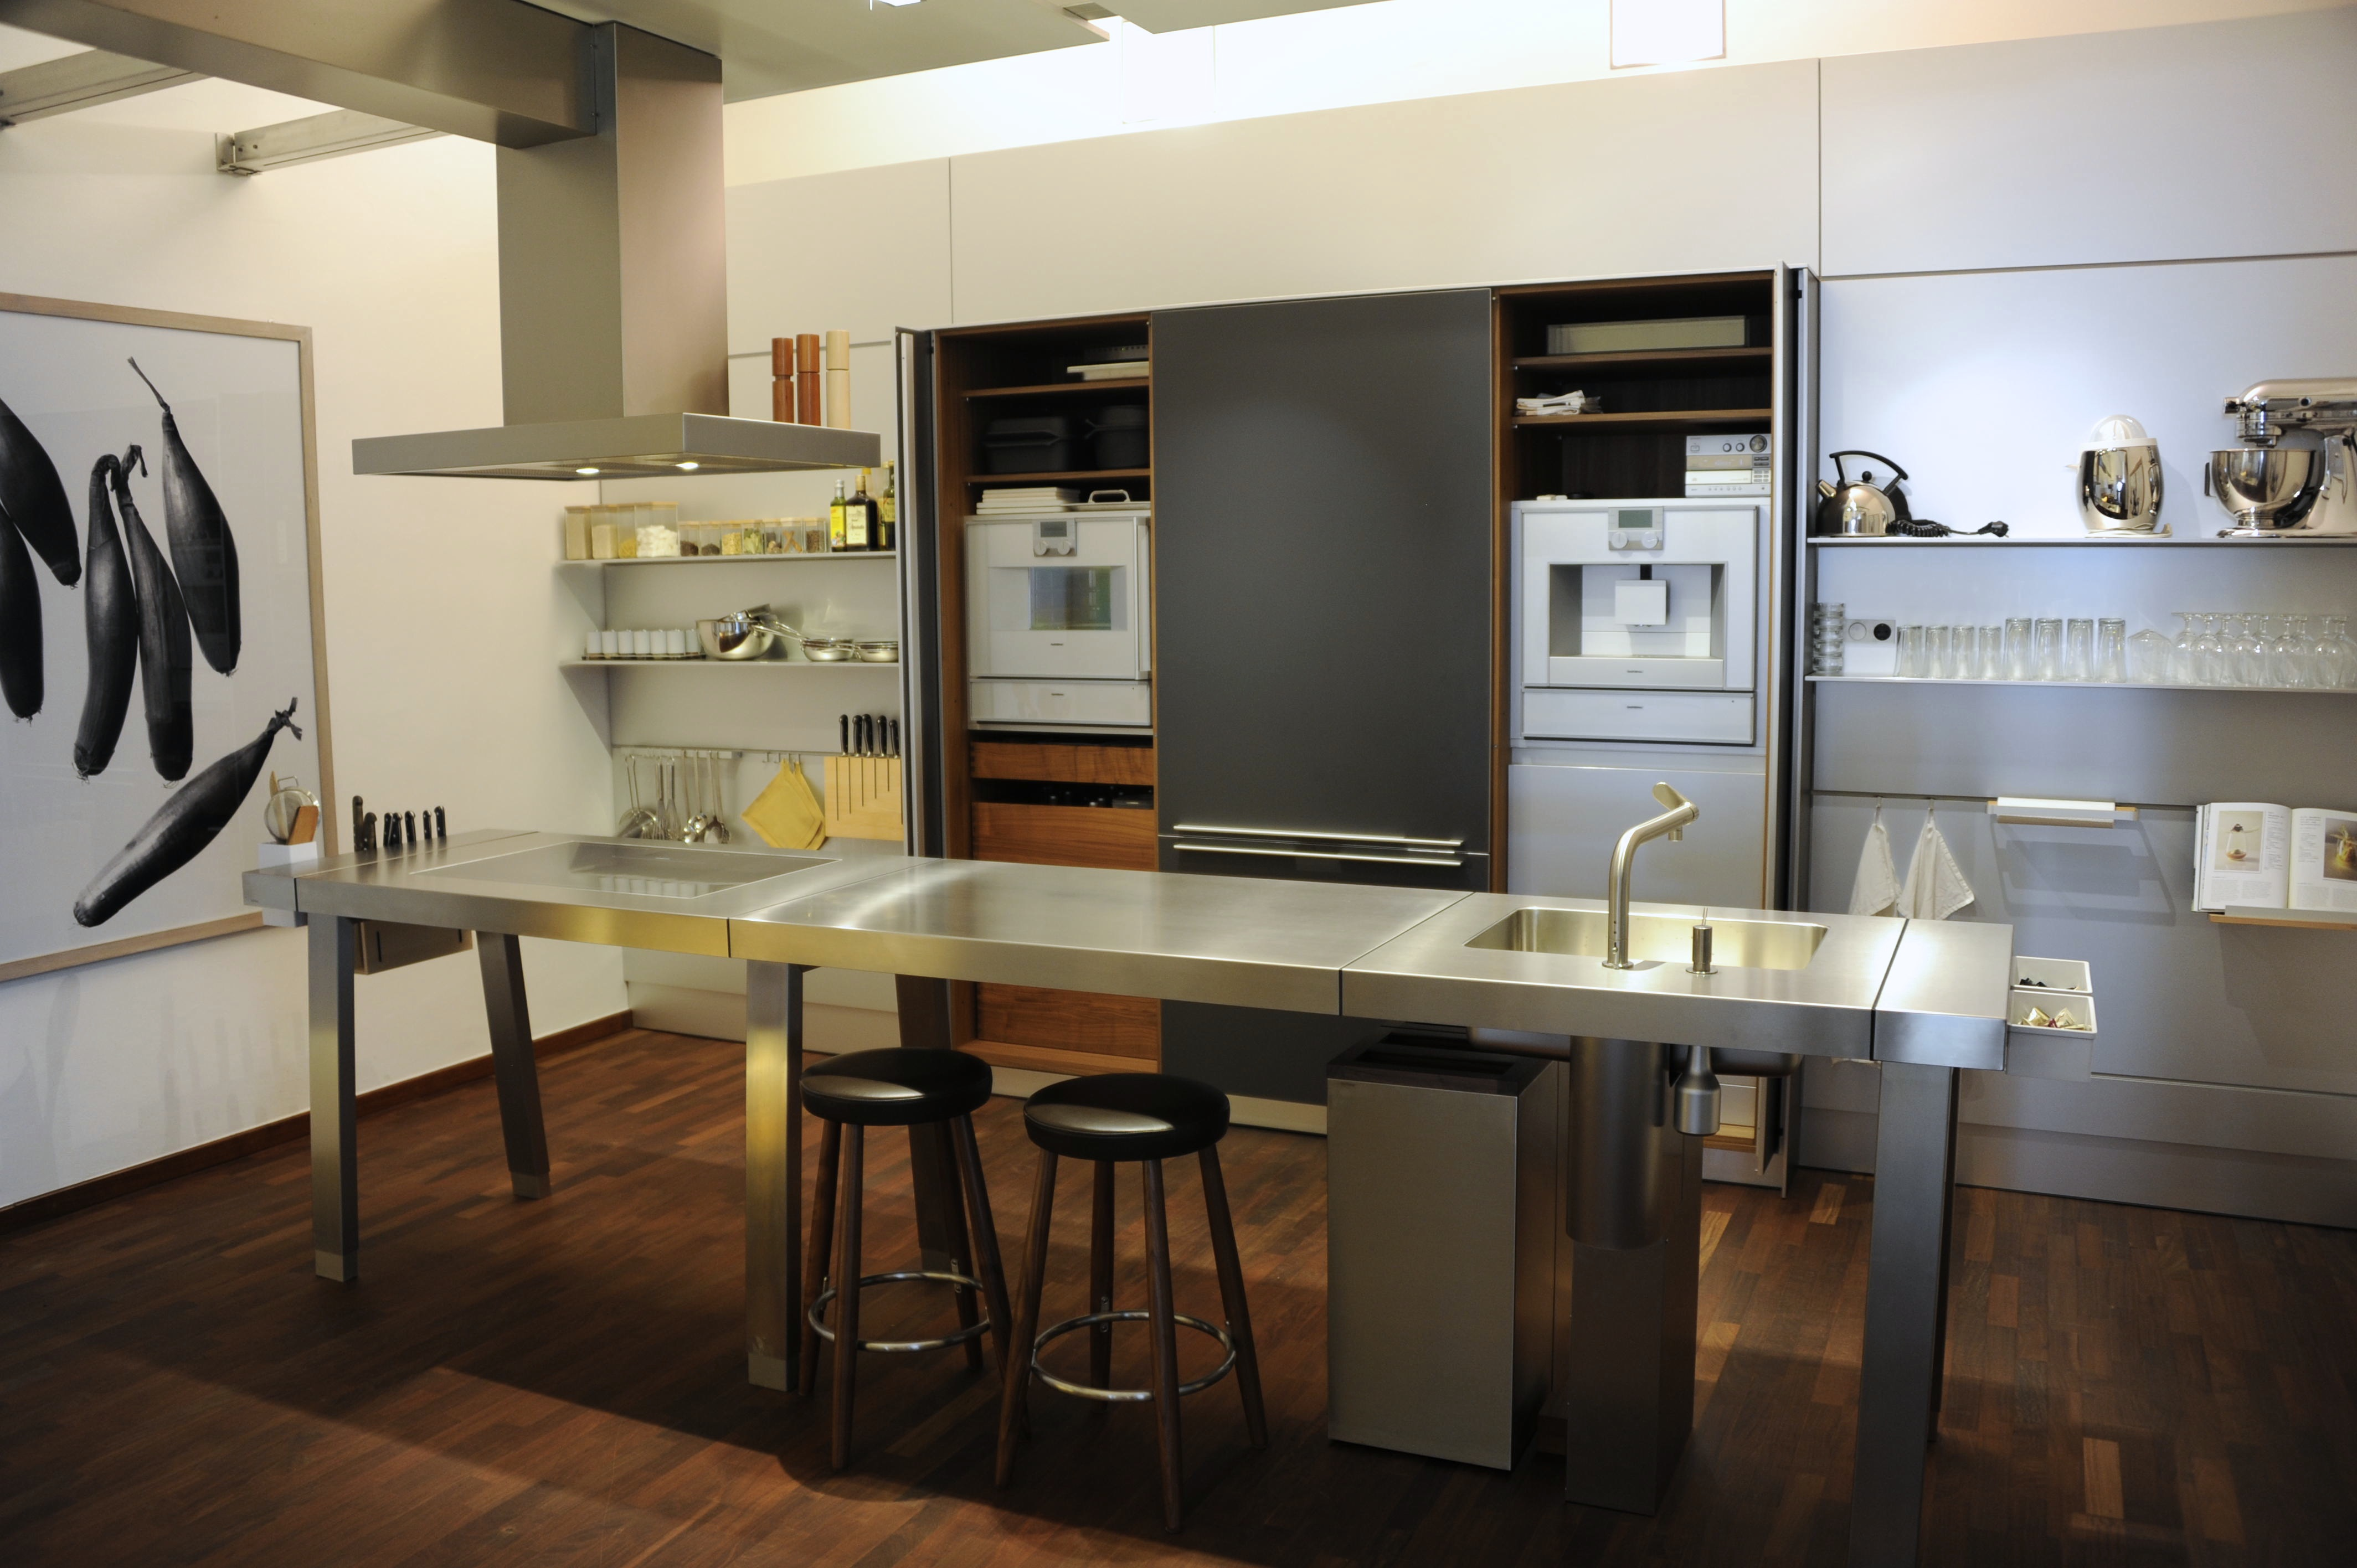 Modernist kitchen design showrooms jet city gastrophysics for Kitchen setup designs